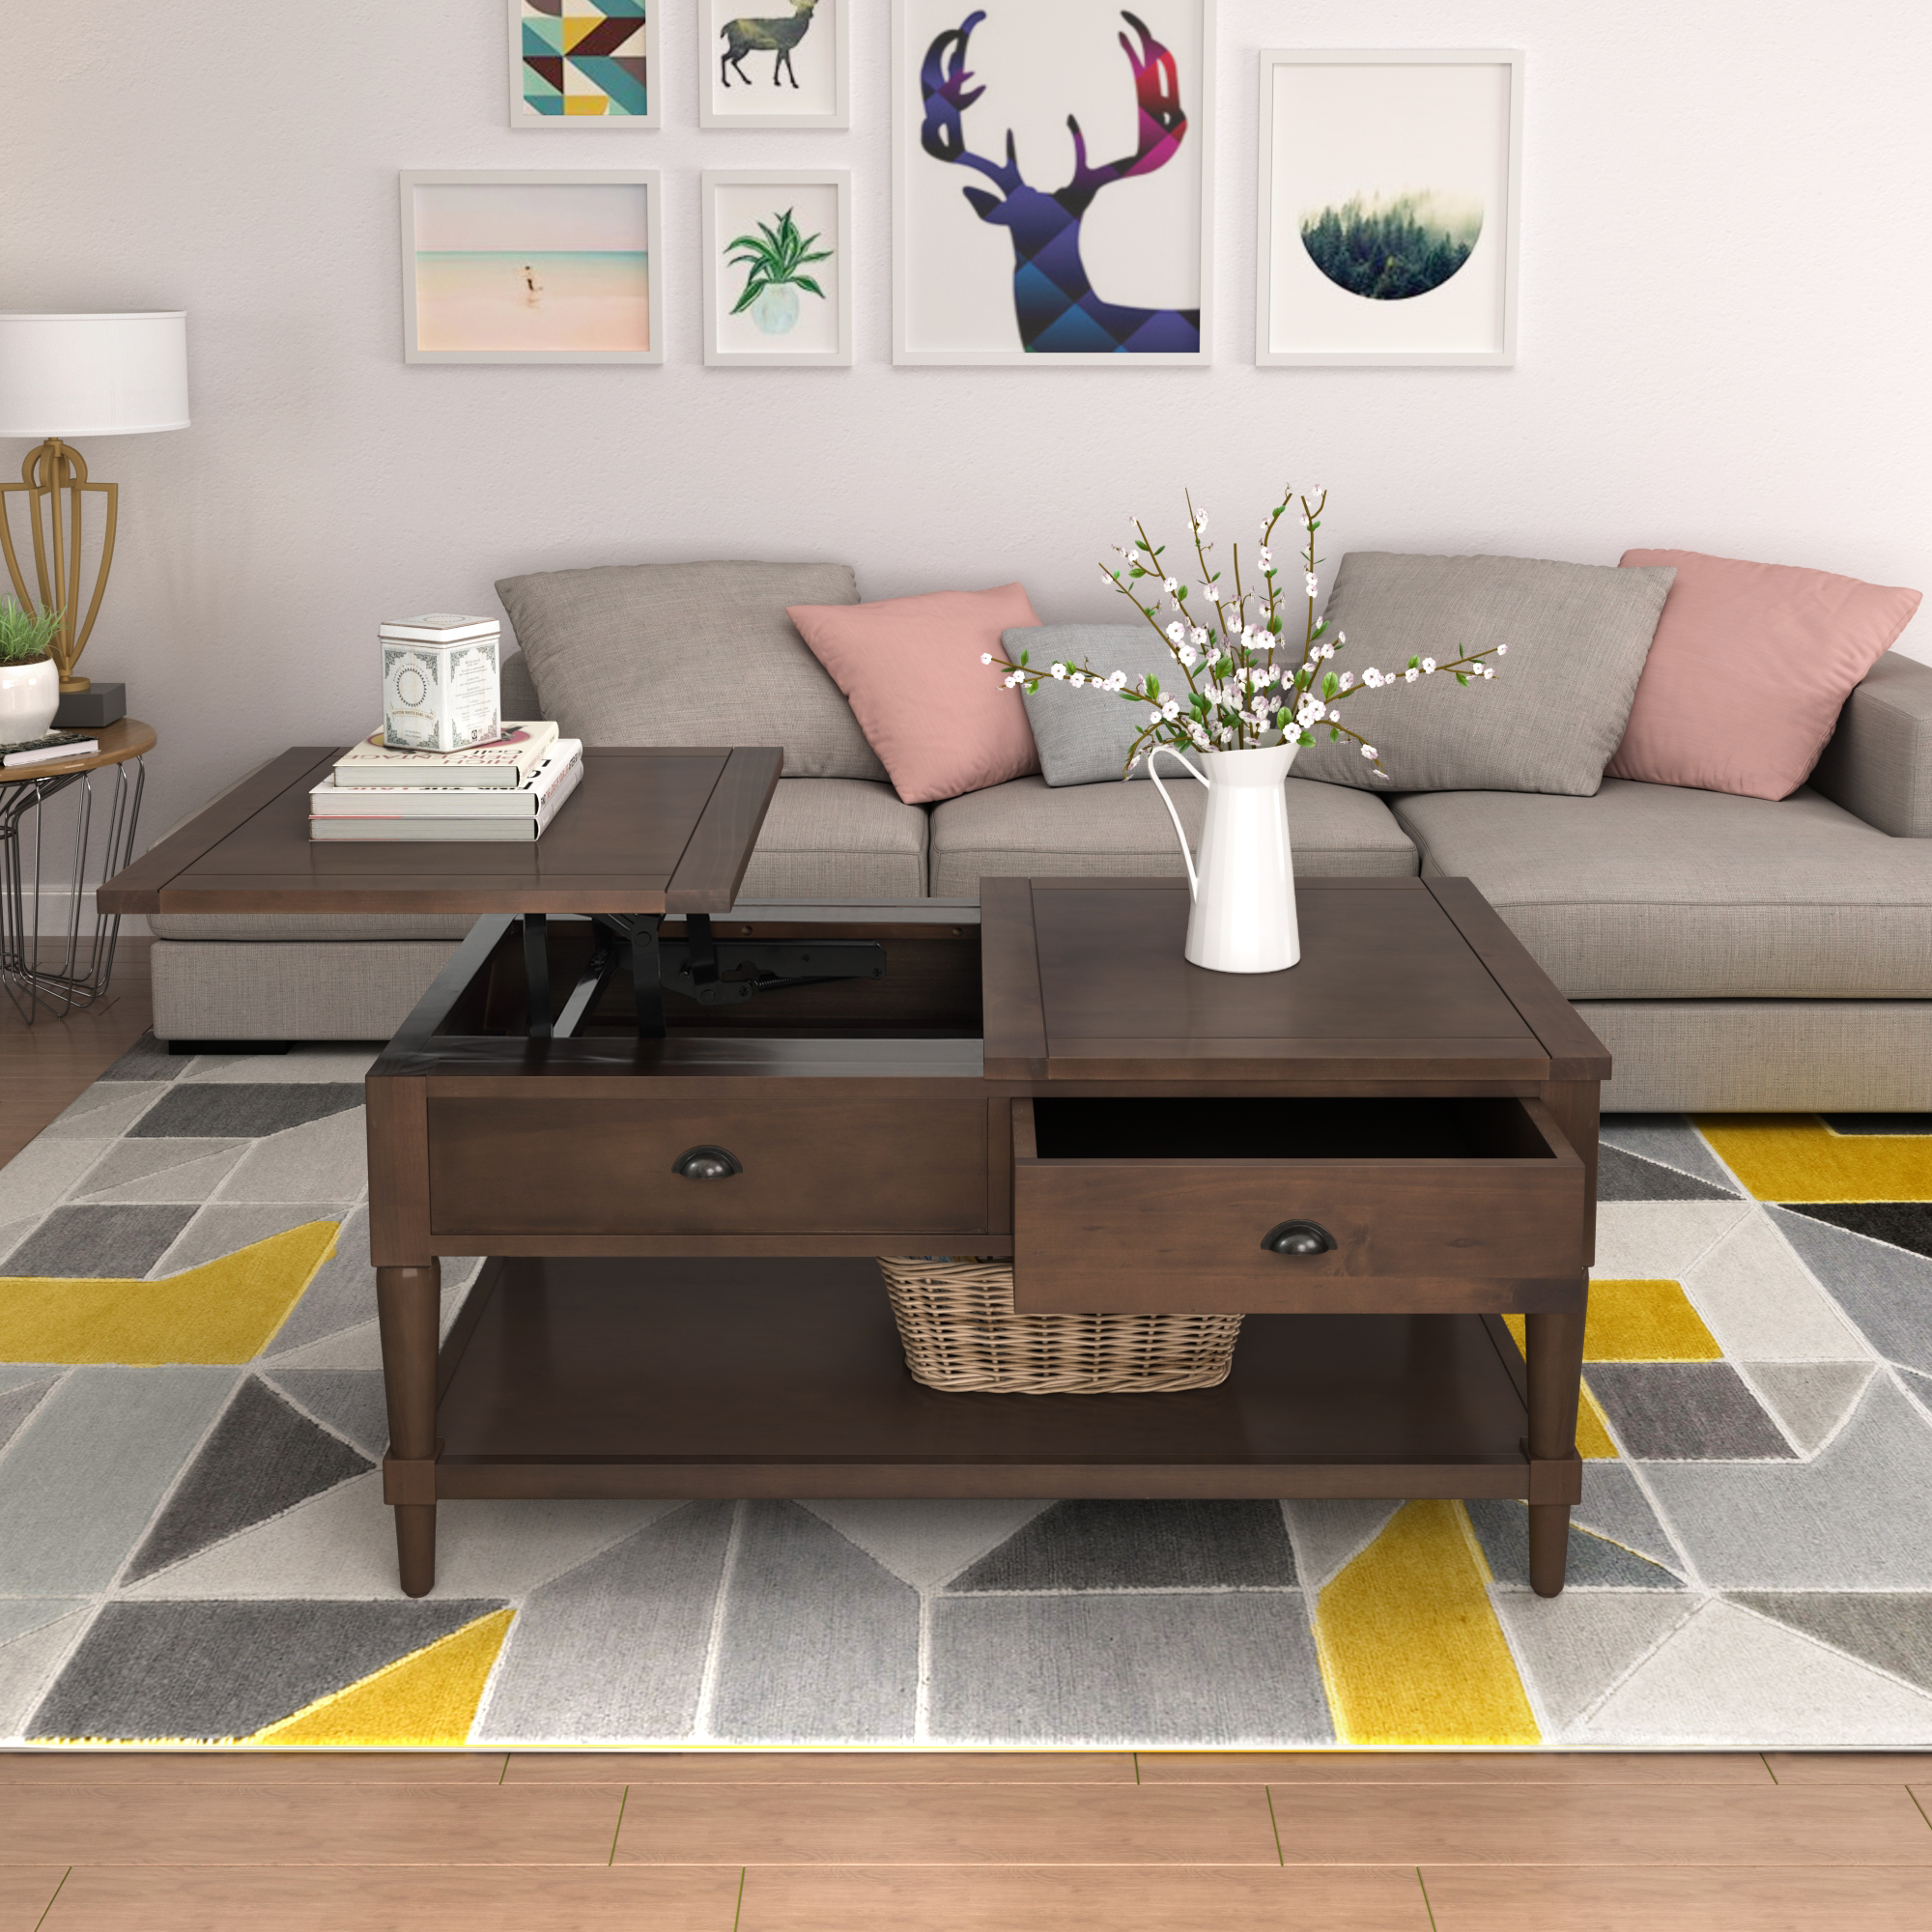 Enyopro Lift Top Coffee Table 2 Tier Cocktail Table With Storage And Shelf Wood Coffee Desk Modern Lift Tabletop For Living Room Reception Room Office Max Capacity 160lbs Easy Assembly B1159 Walmart Com